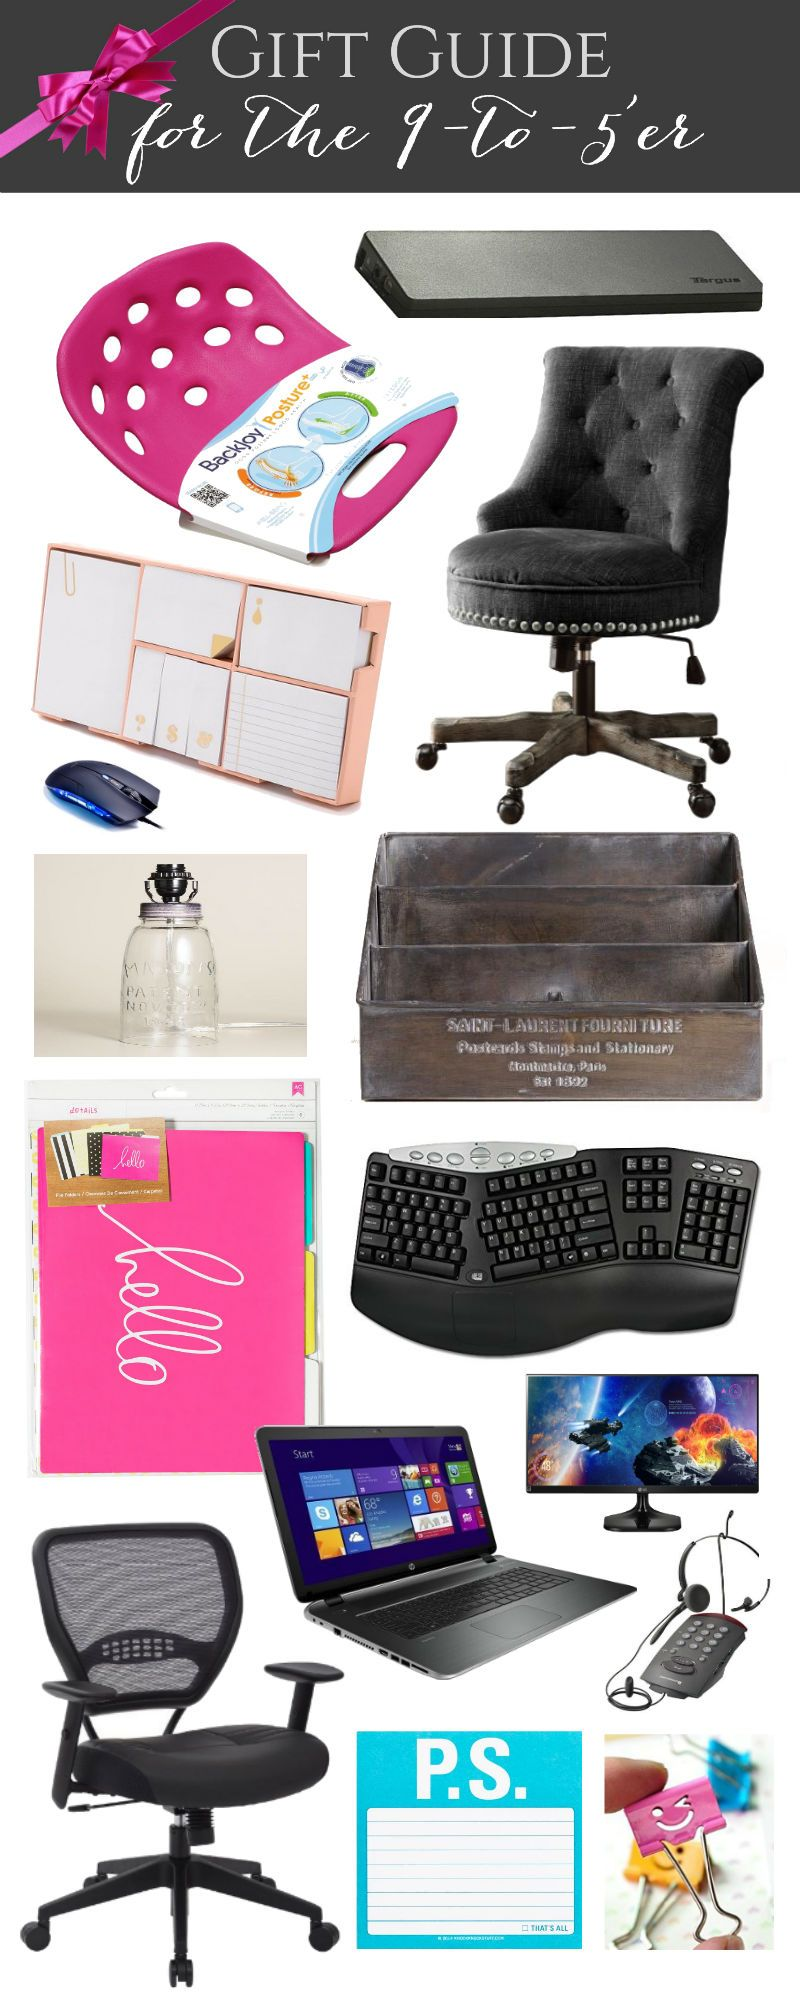 diy office gifts. Gift Guide For The 9 To 5er With Happily Ever After Etc! $50 Giveaway! Diy Office Gifts